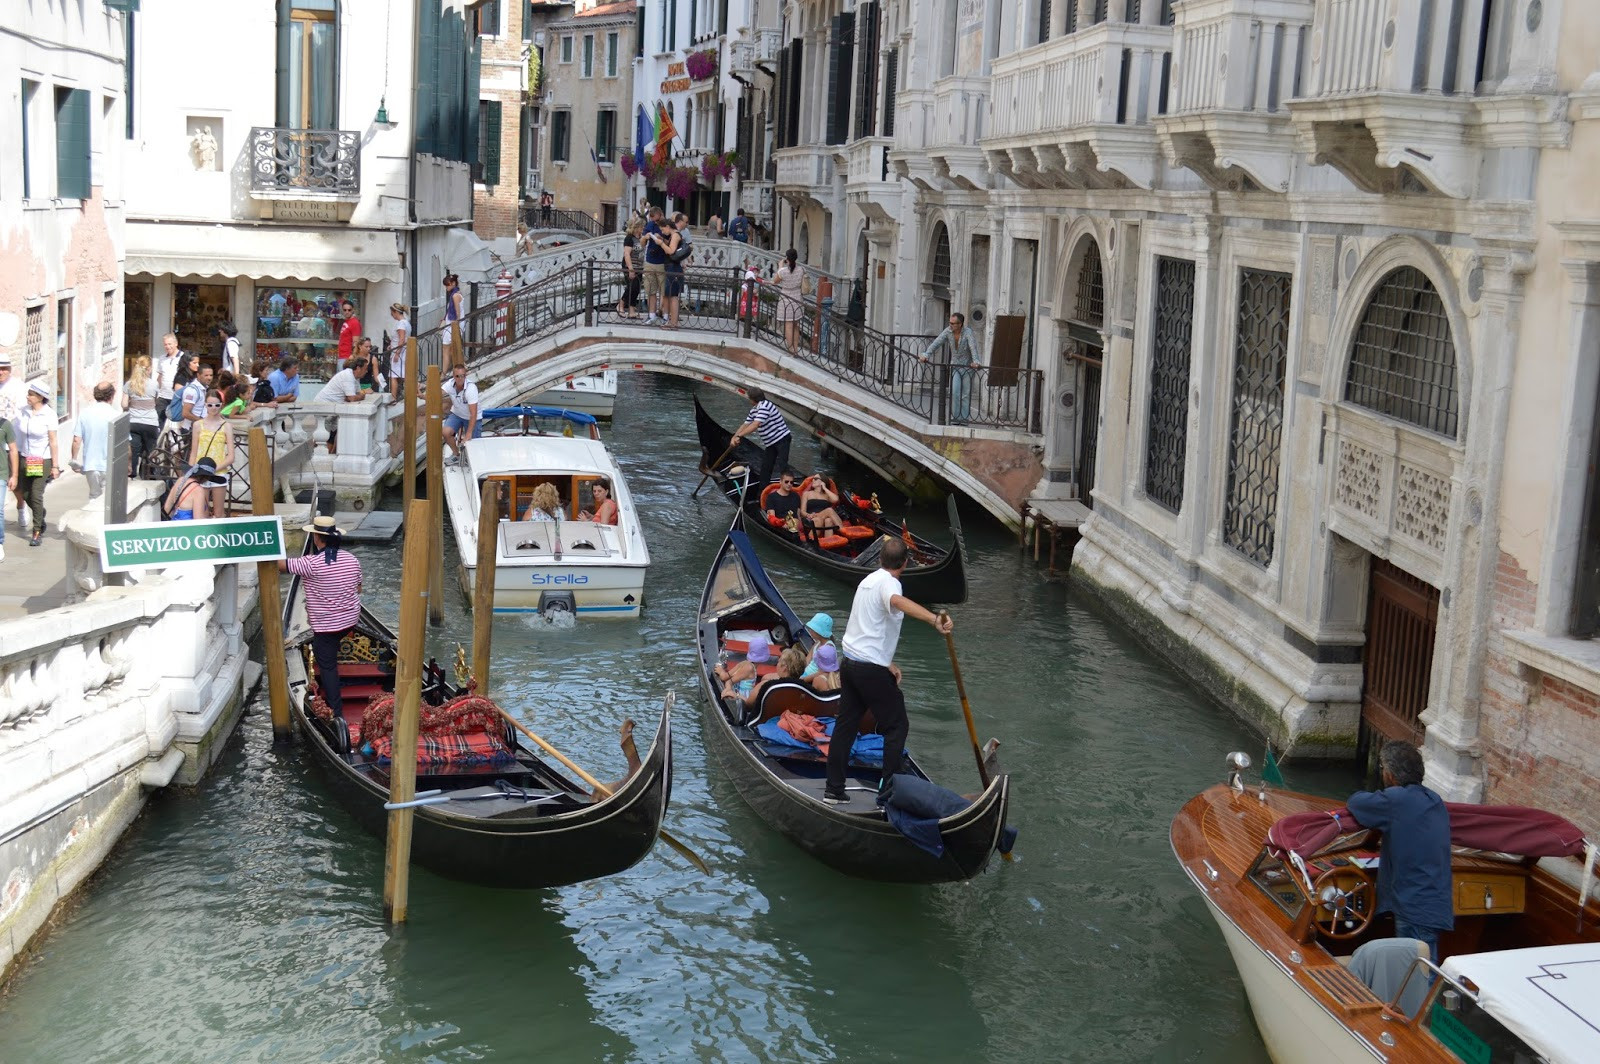 Venice - a pearl | To the ends of the earth